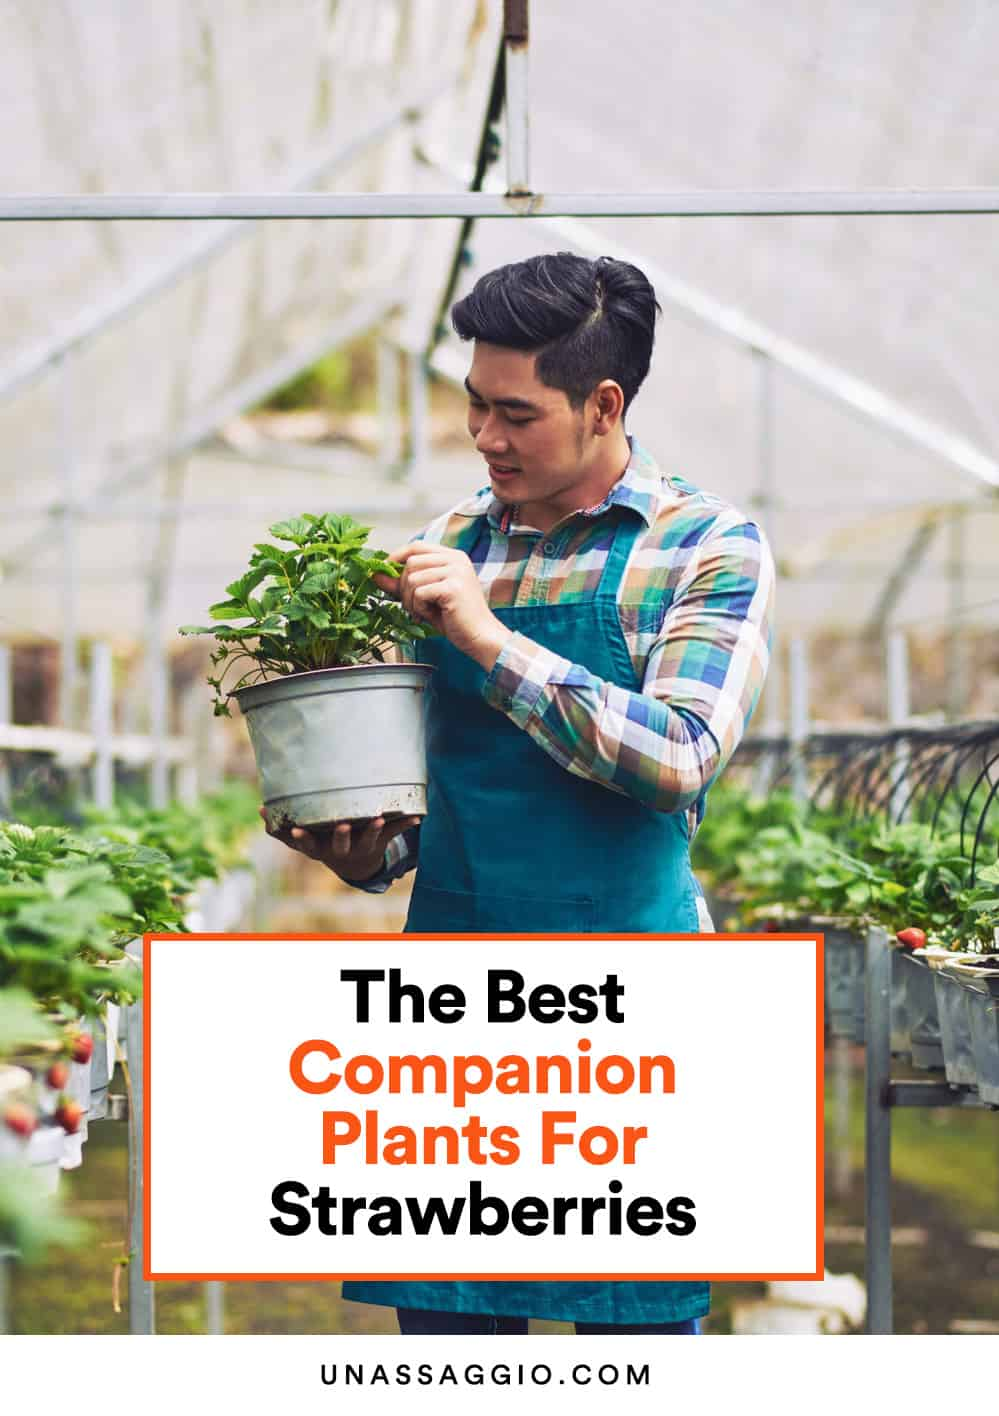 The Best companion plants for strawberries